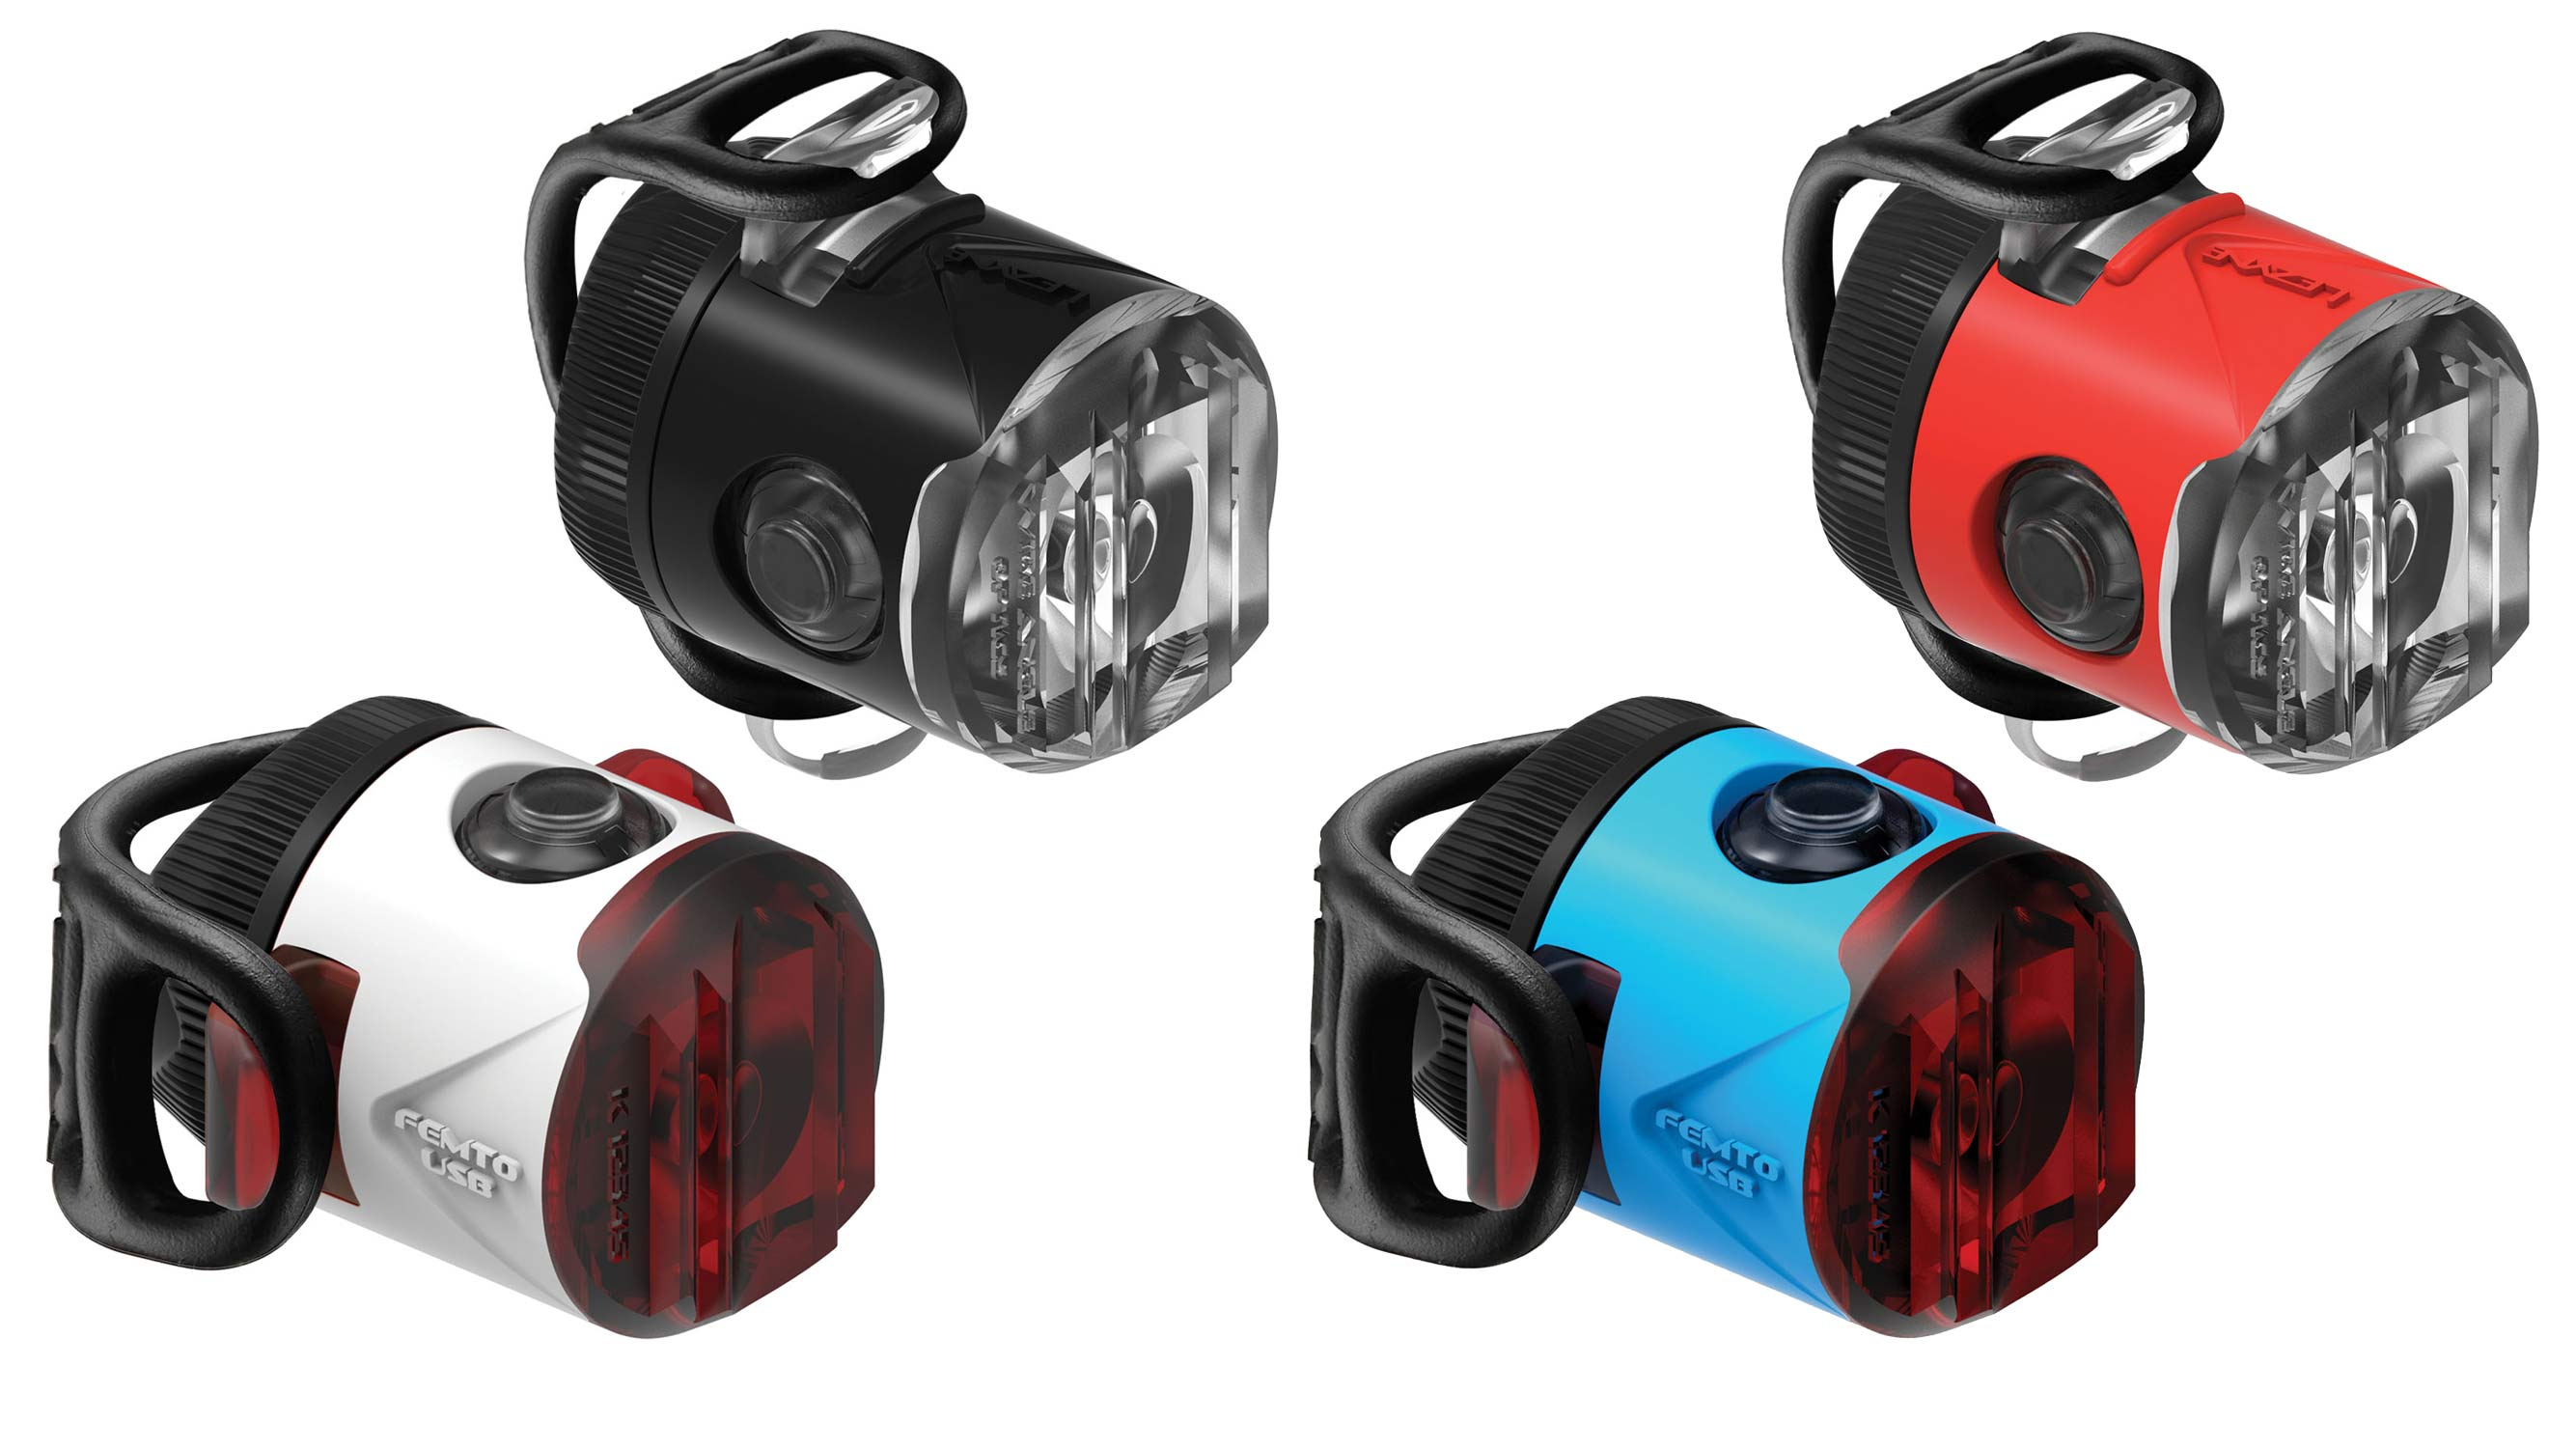 Lezyne Femto USB Drive, rechargeable mini blinkie light refresh